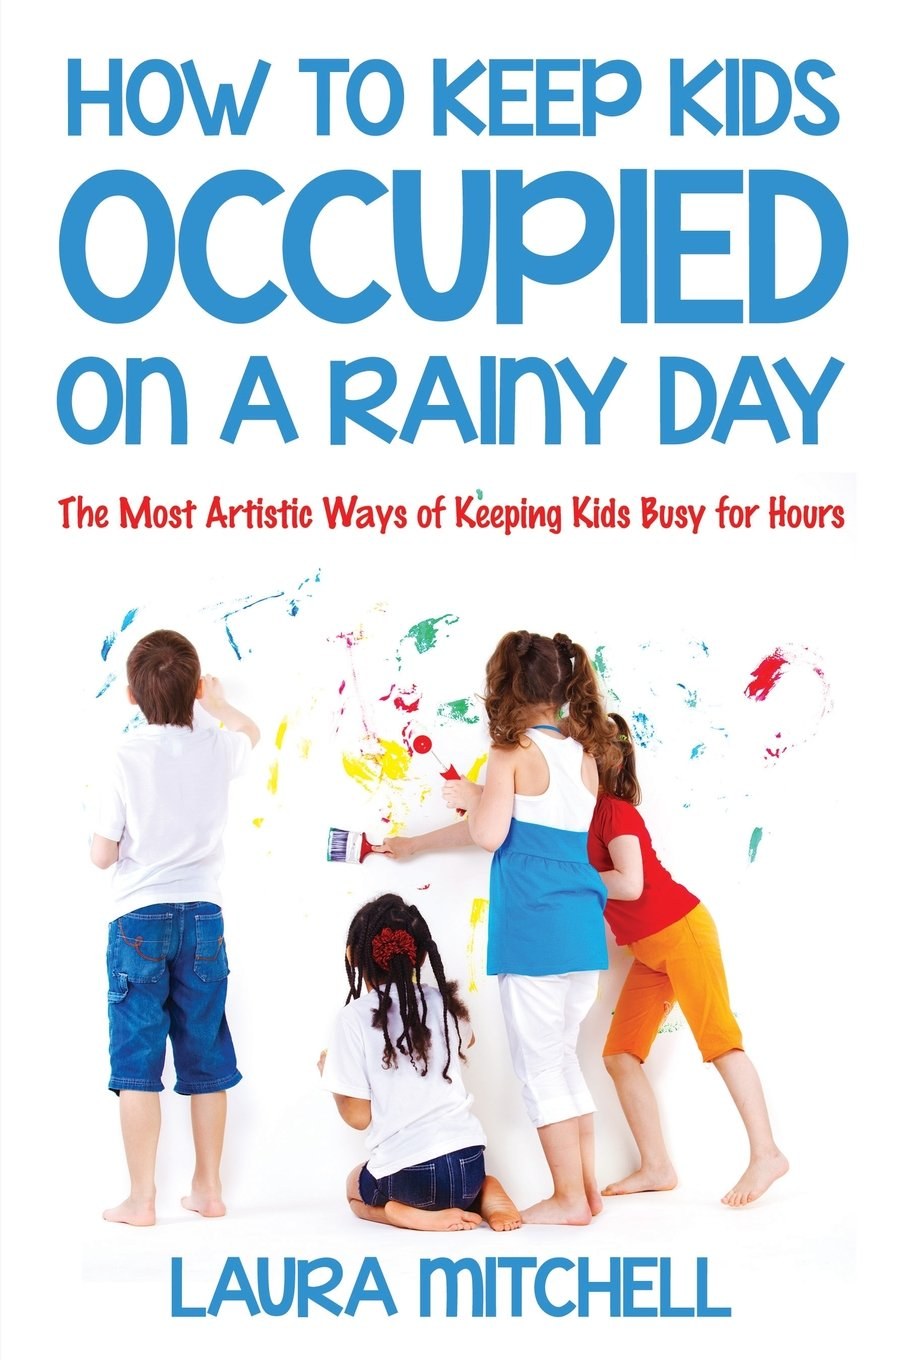 How to Keep Kids Occupied On A Rainy Day: The Most Artistic Ways of Keeping Kids Busy for Hours pdf